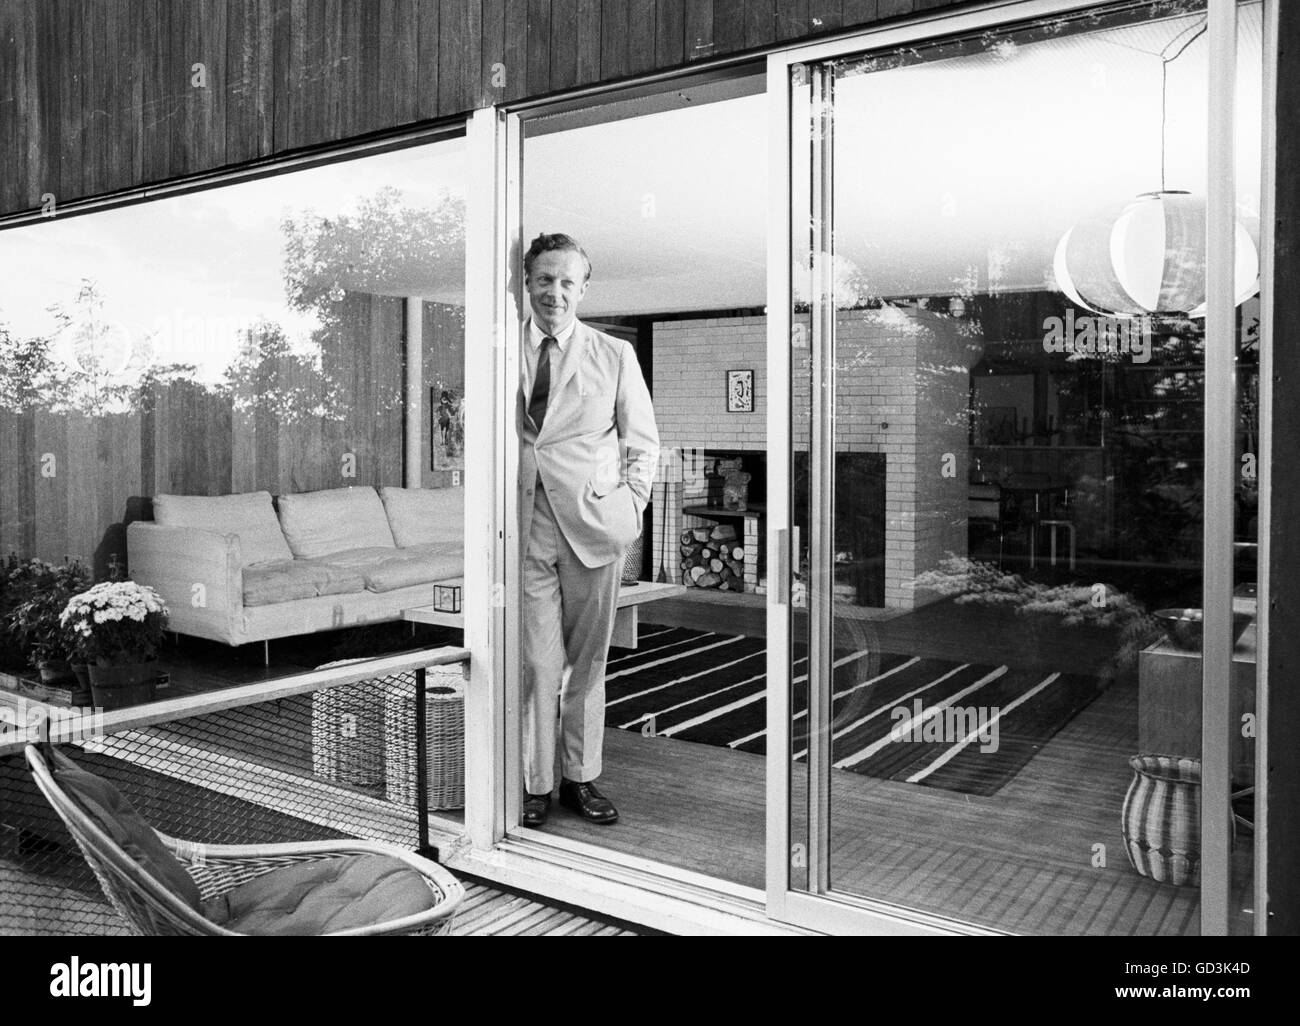 Architect and designer Ben Thompson Stock Photo, Royalty Free ...